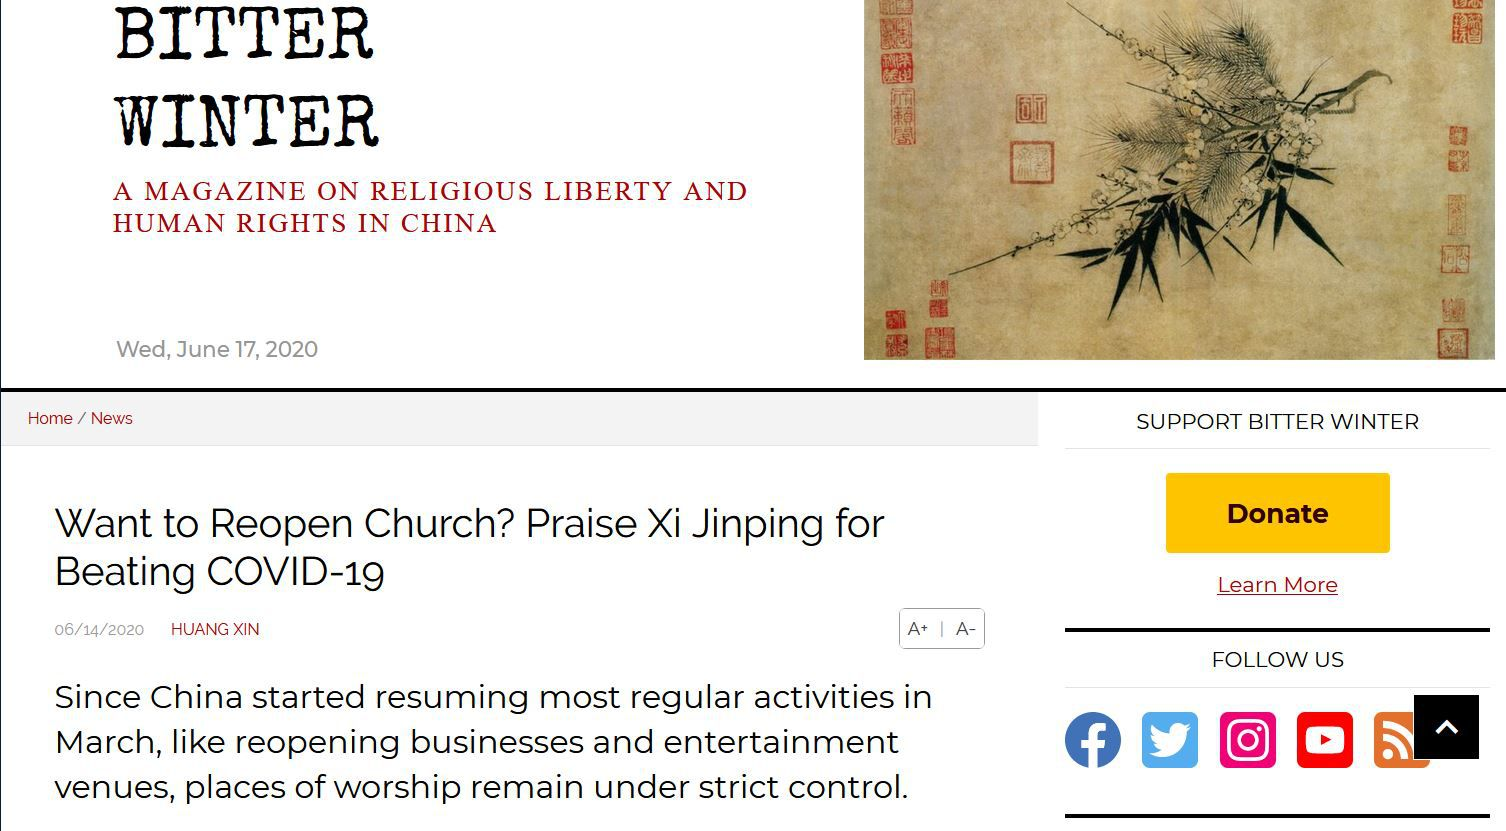 https://bitterwinter.org/want-to-reopen-church-praise-xi-jinping-for-beating-covid-19/